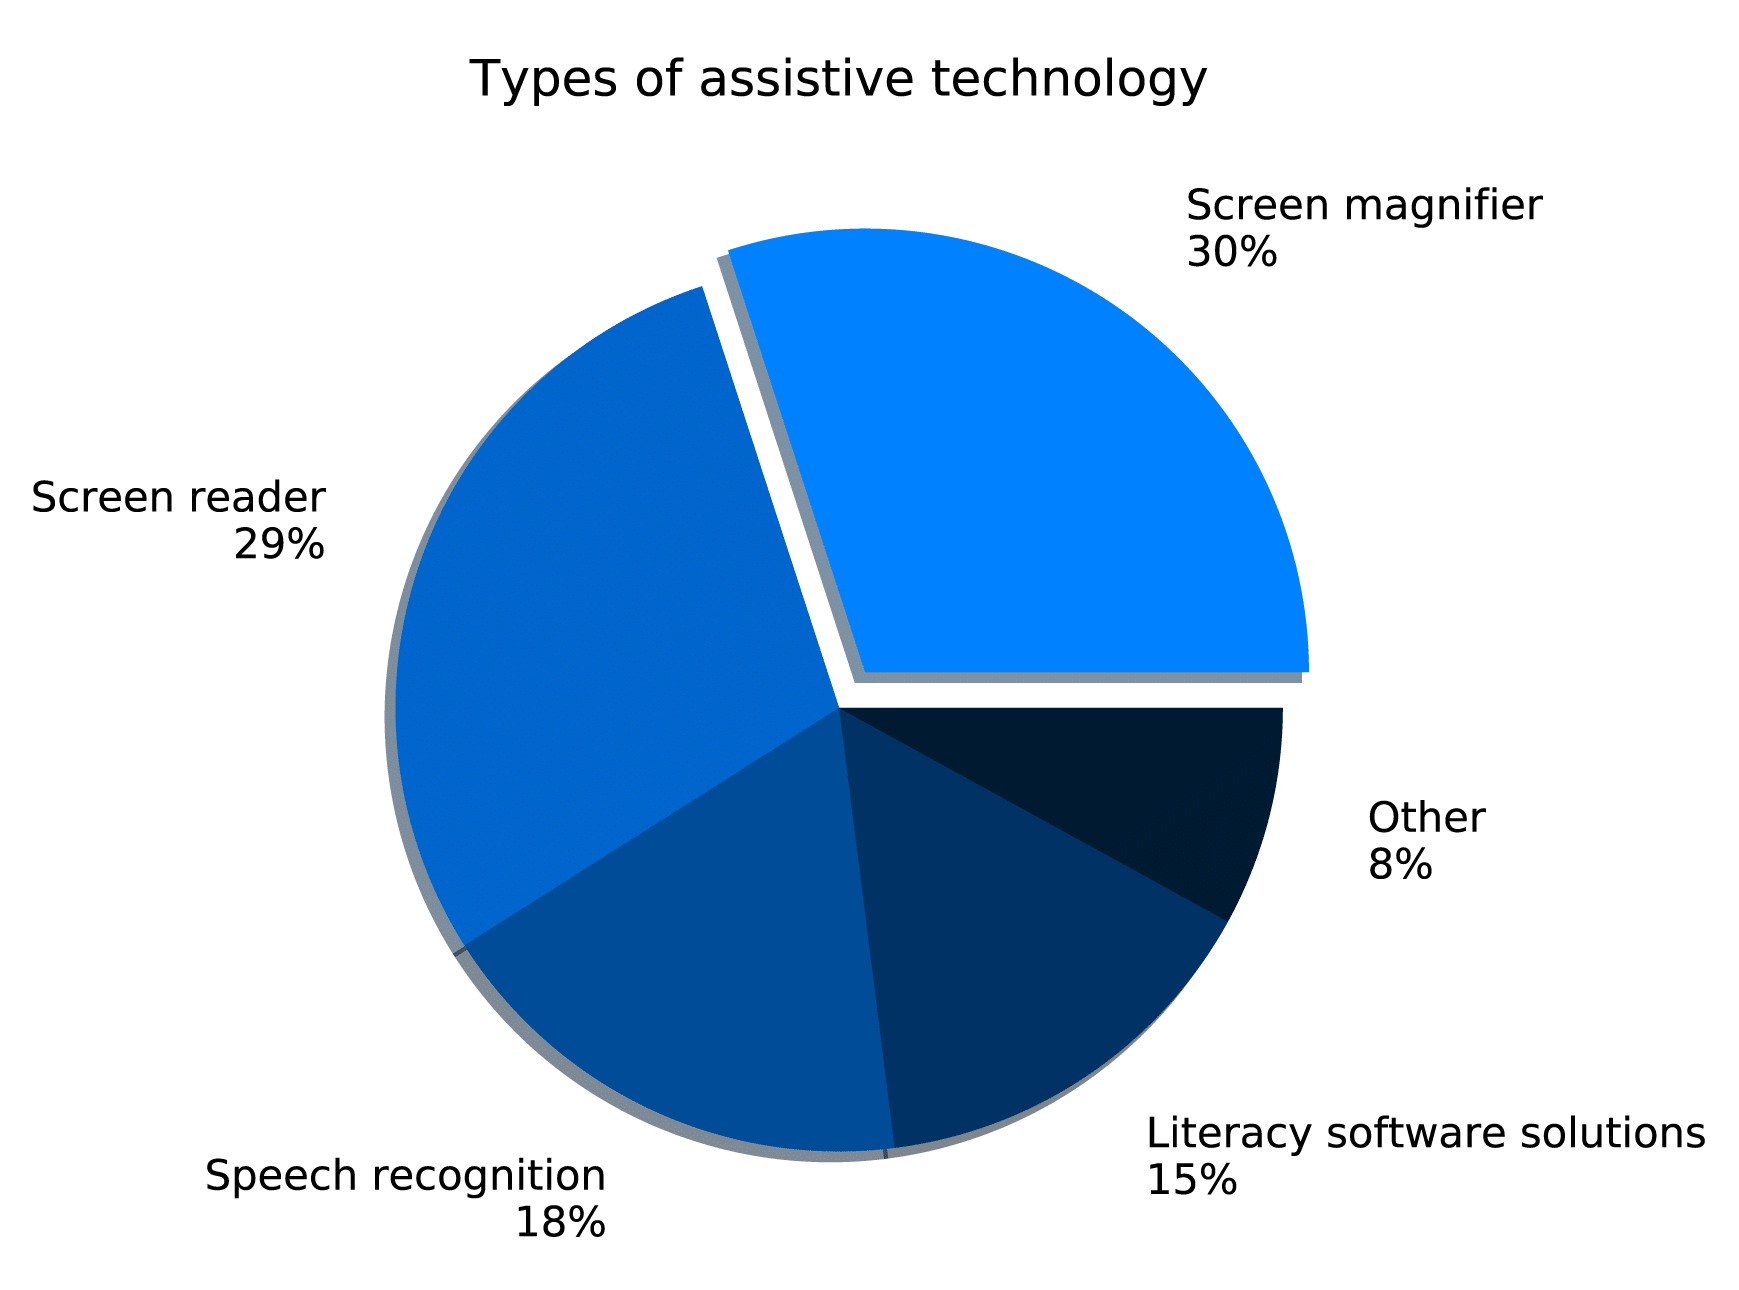 Pie chart showing percentages of users of different types of assistive technology